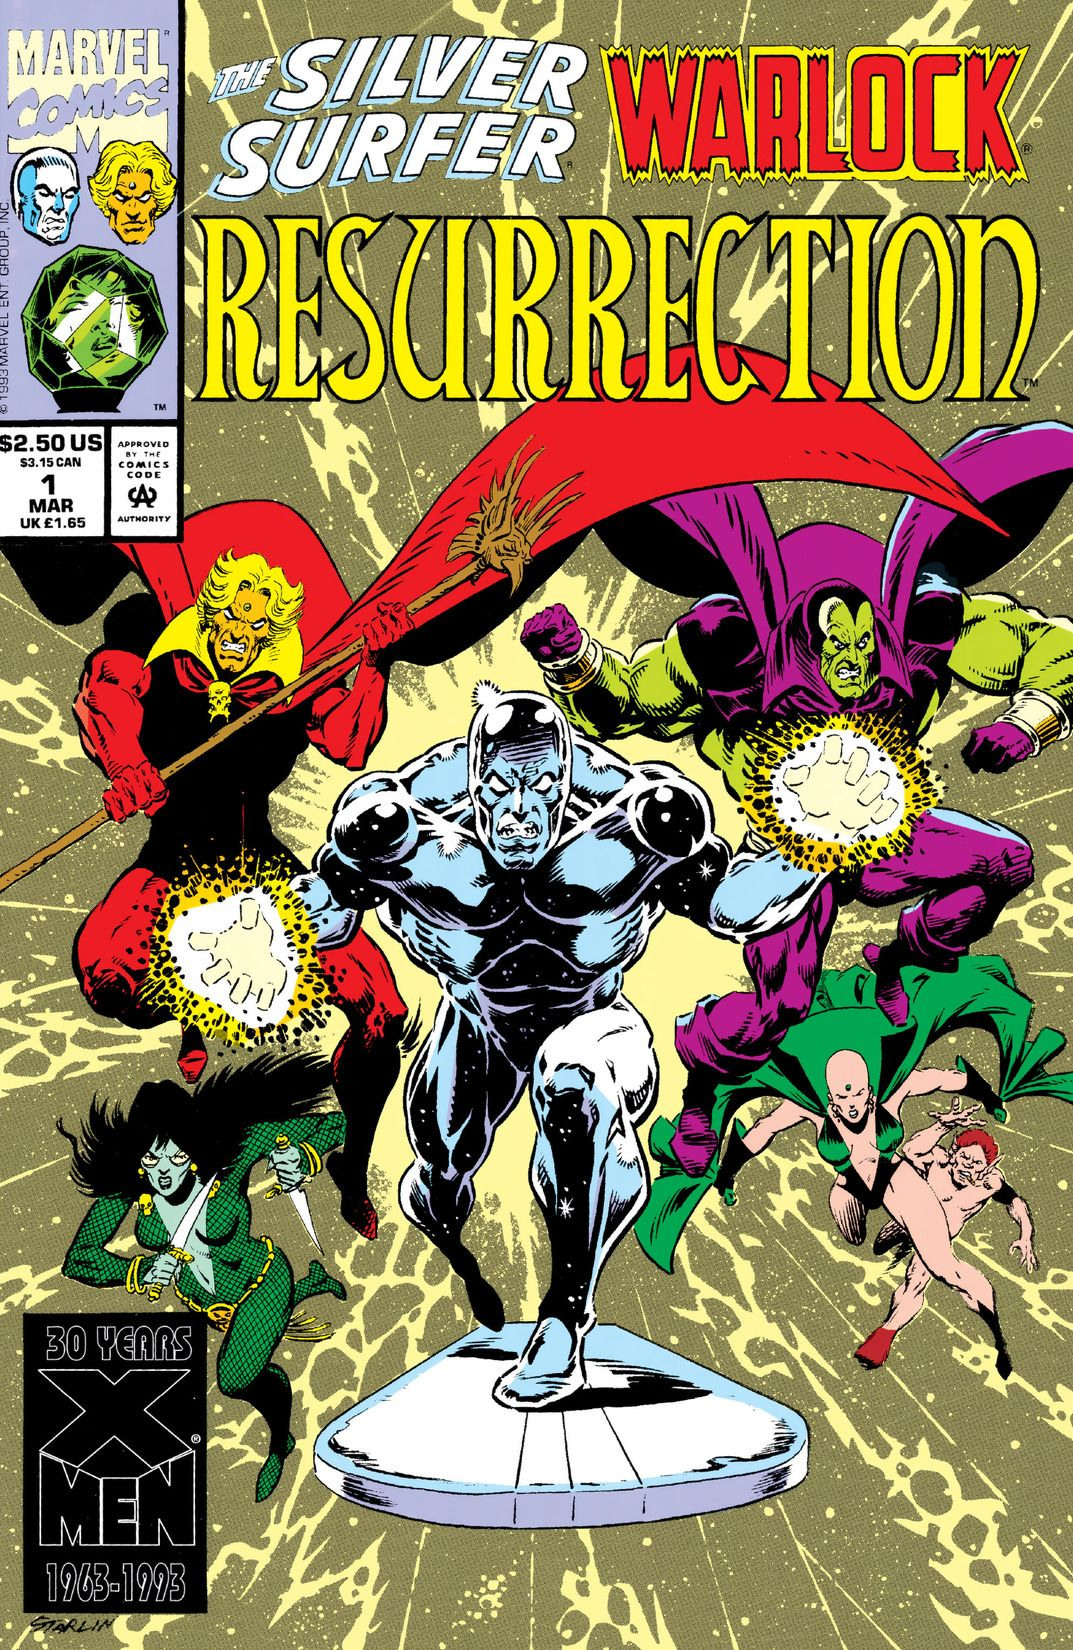 Silver Surfer/Warlock: Resurrection Vol 1 1